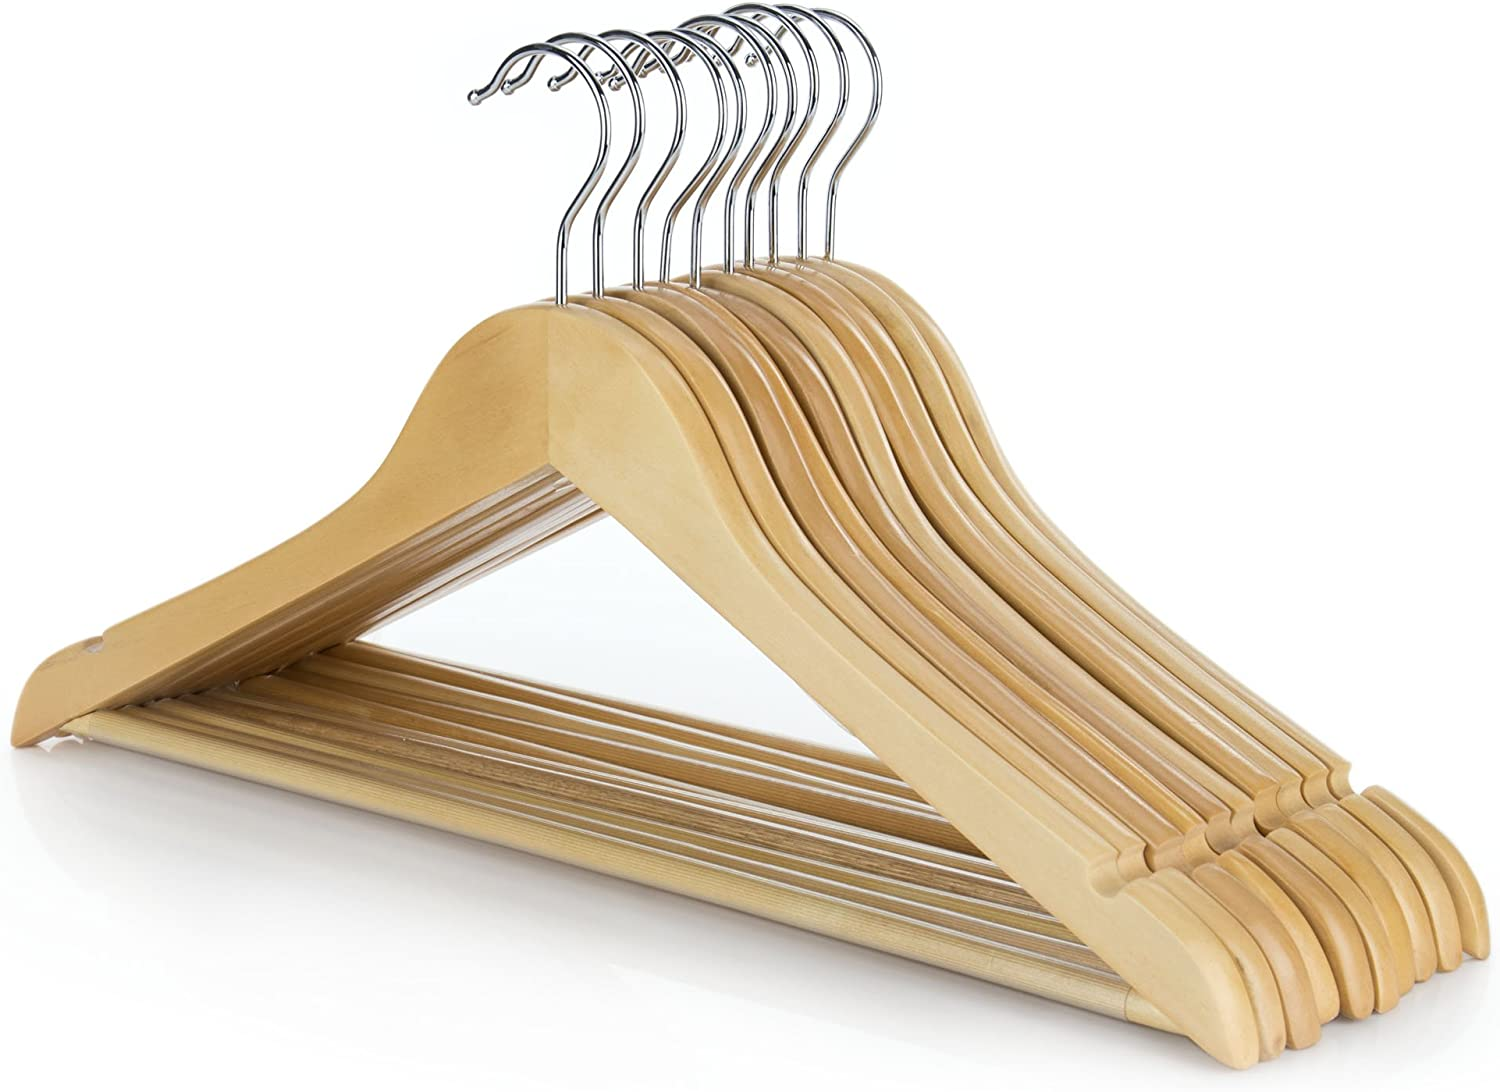 50 x Wooden Coat Hangers Clothes Trouser Hangers NEW!